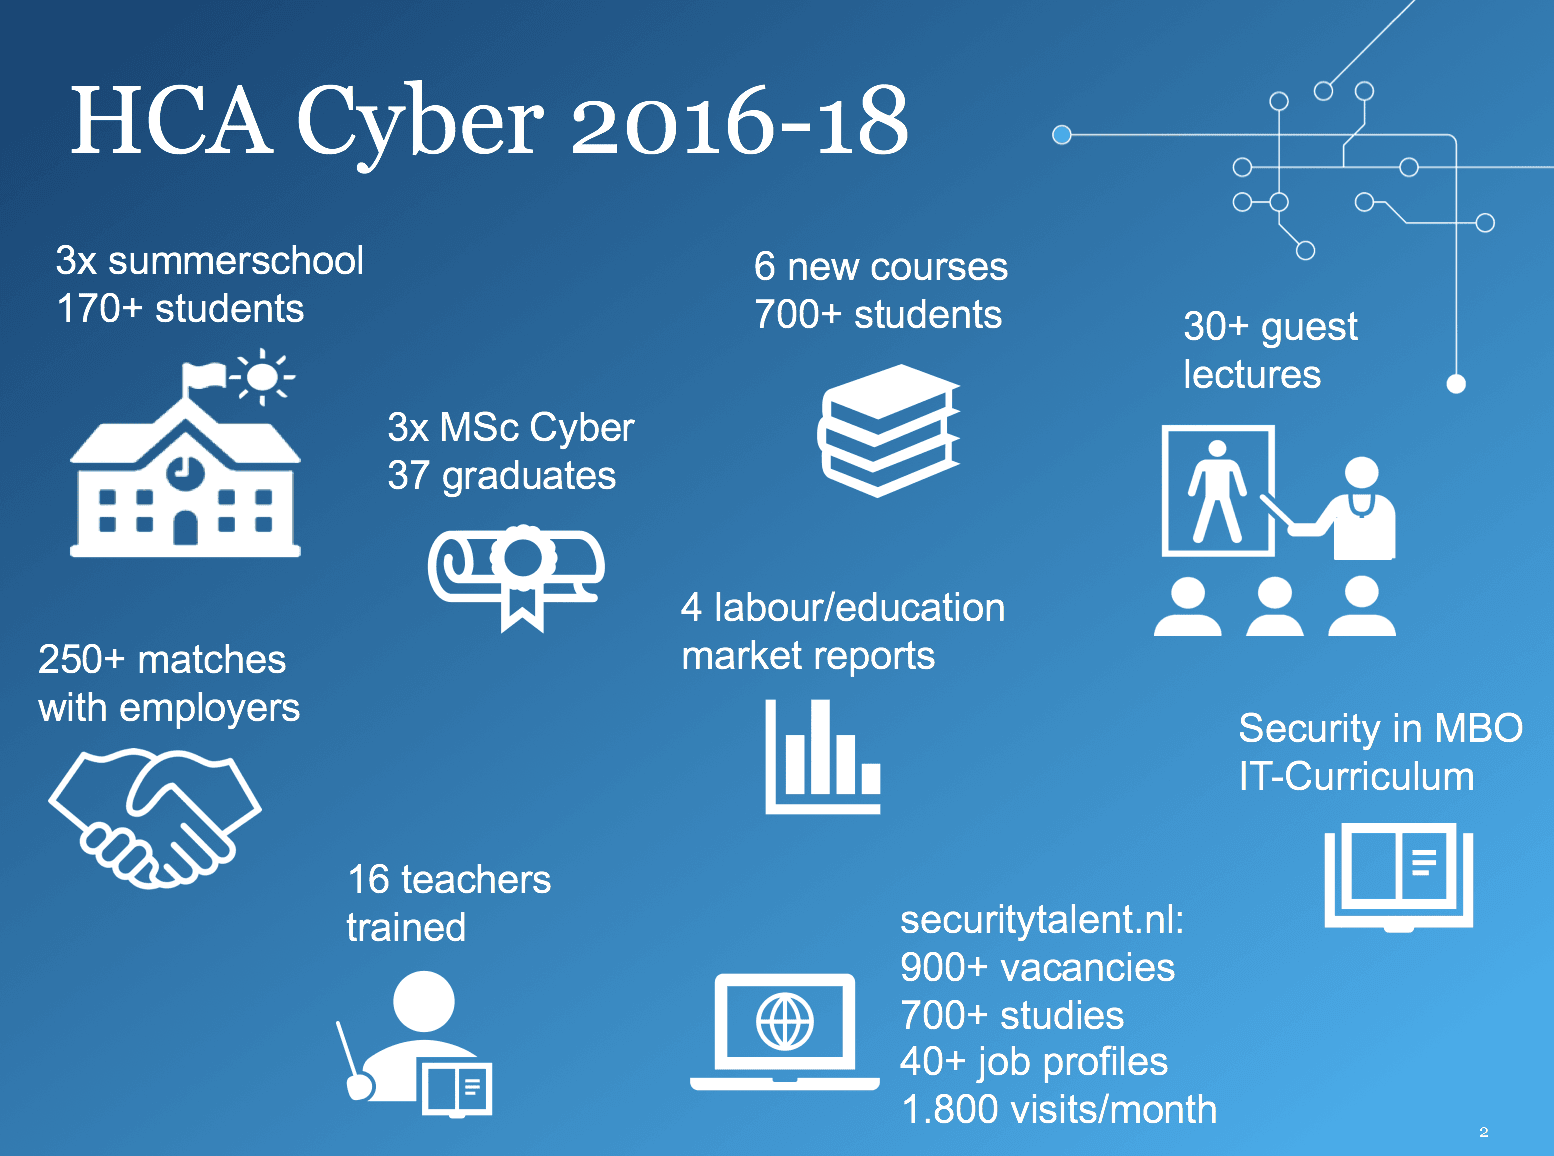 Results Human Capital Action Agenda Cyber Security 2016-2018